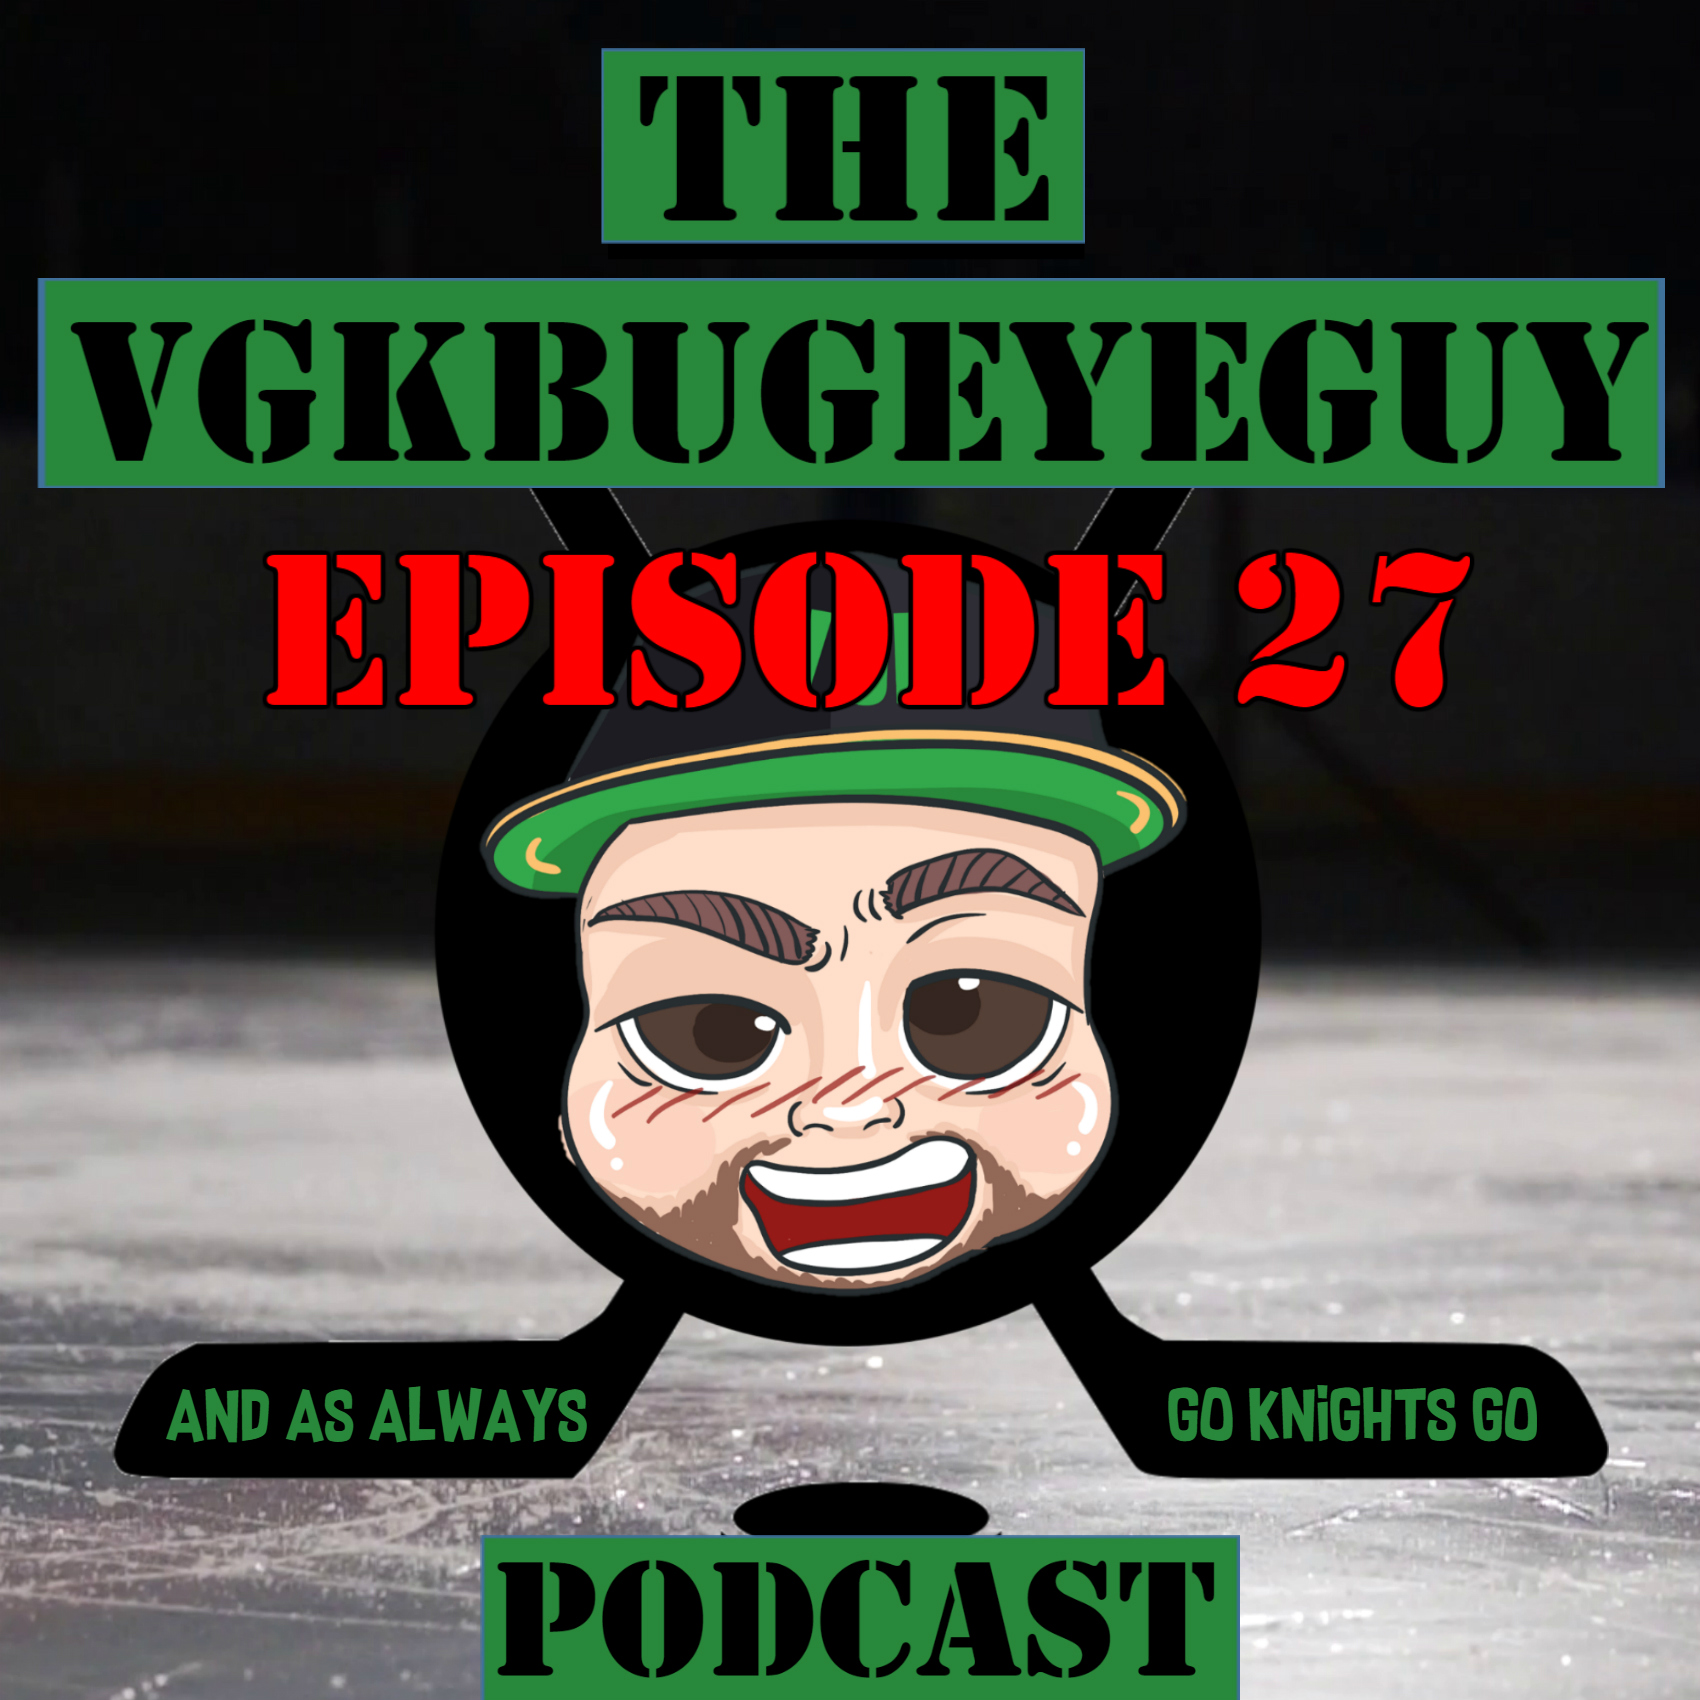 Episode 27: Jets ground the Golden Knights, Saturday Knight main event against the Penguins